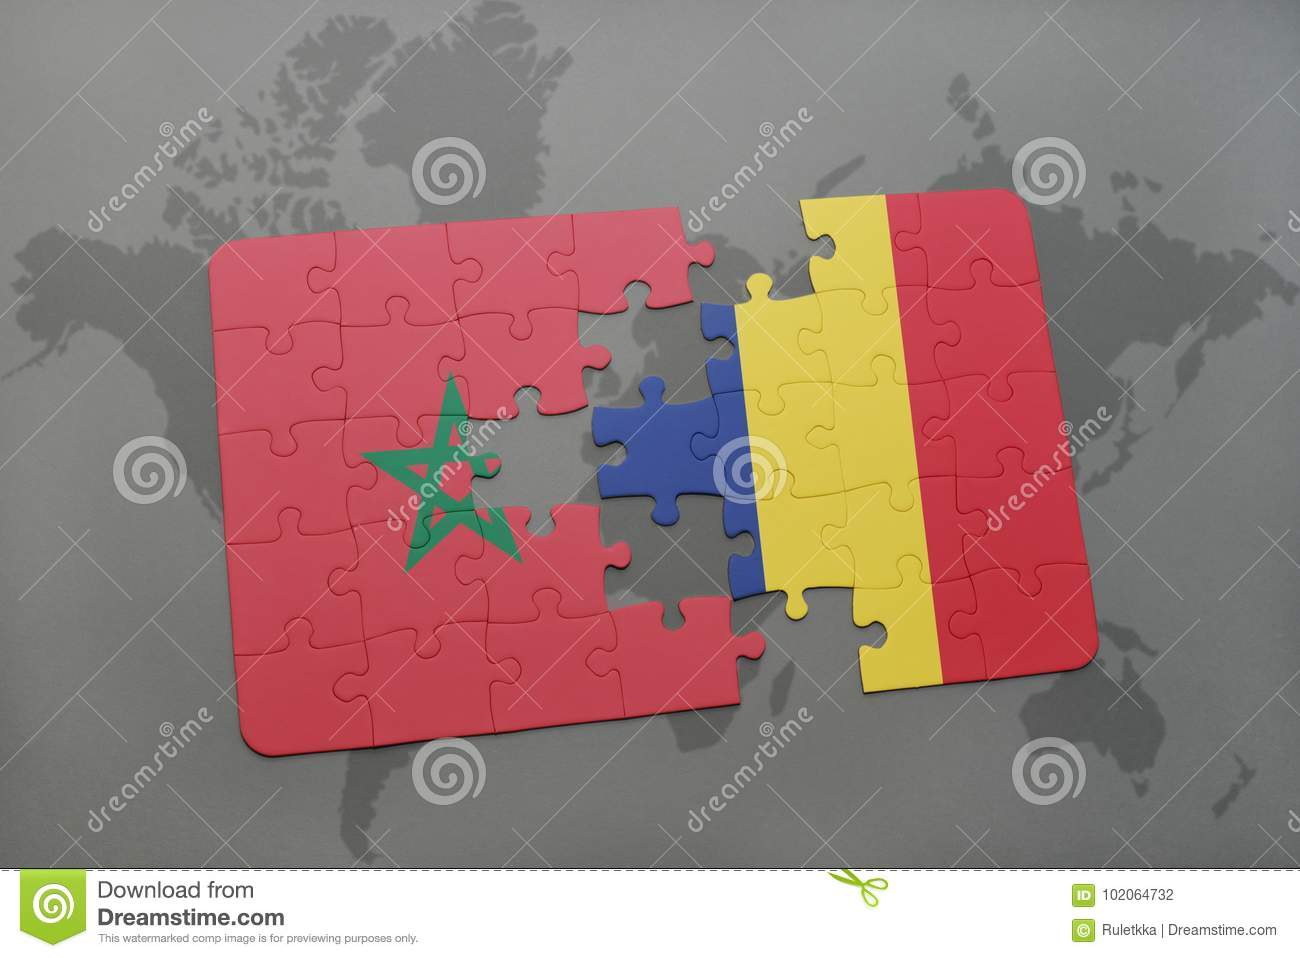 puzzle with the national flag of morocco and chad on a world map